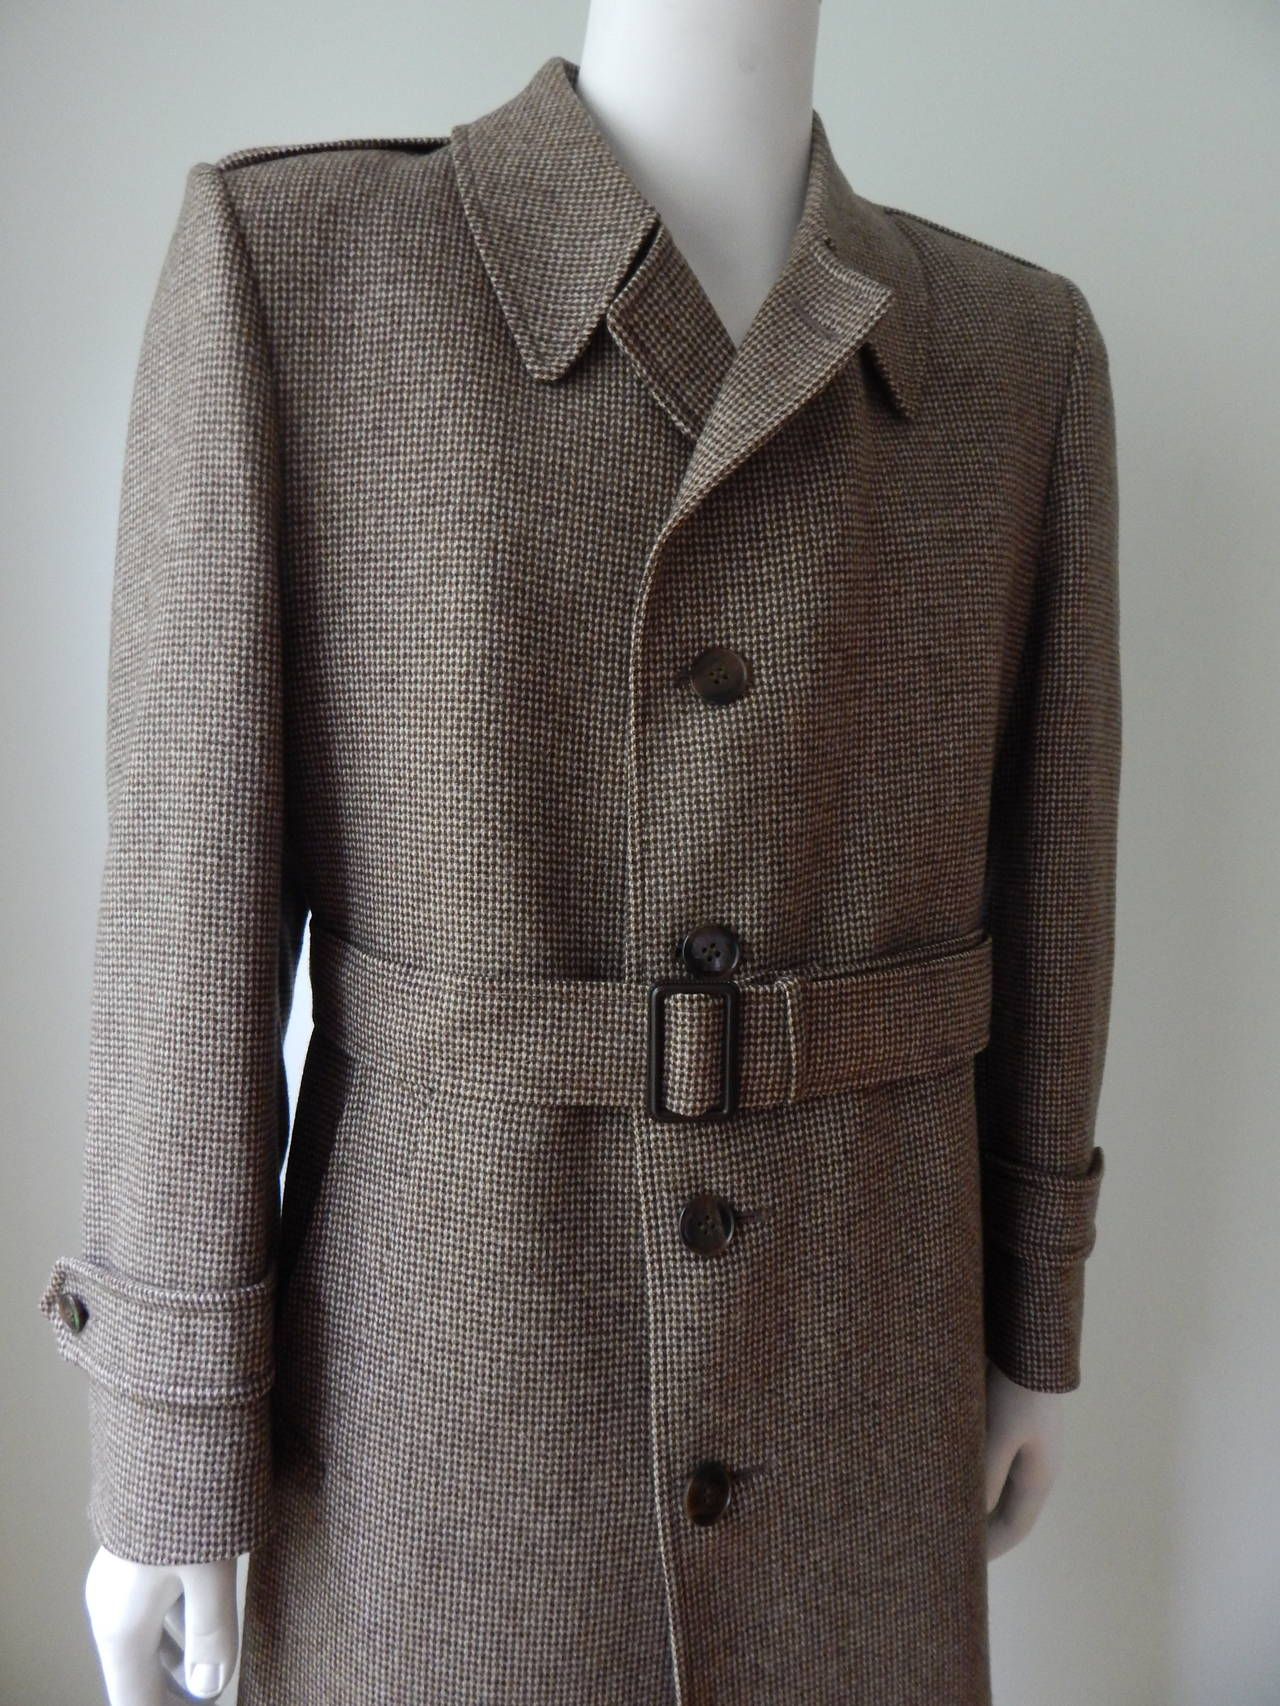 Yves Saint Laurent Mens Coat 2